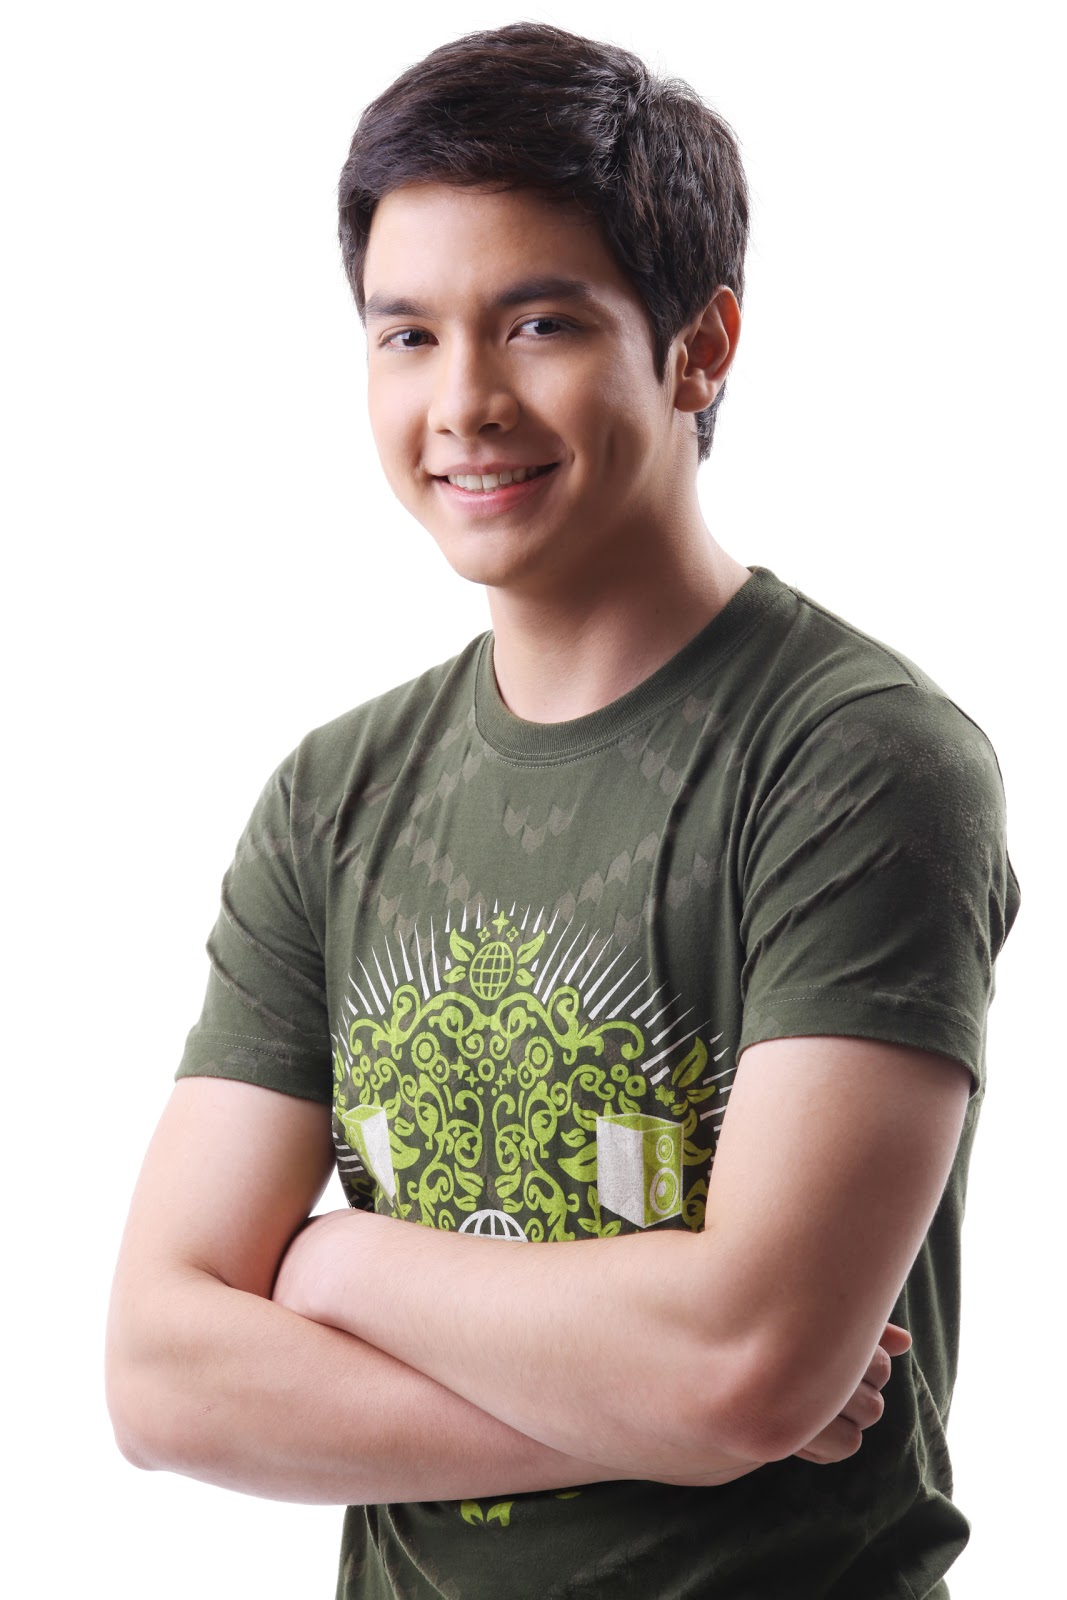 Louise de los reyes and alden richards pictures in for The alden